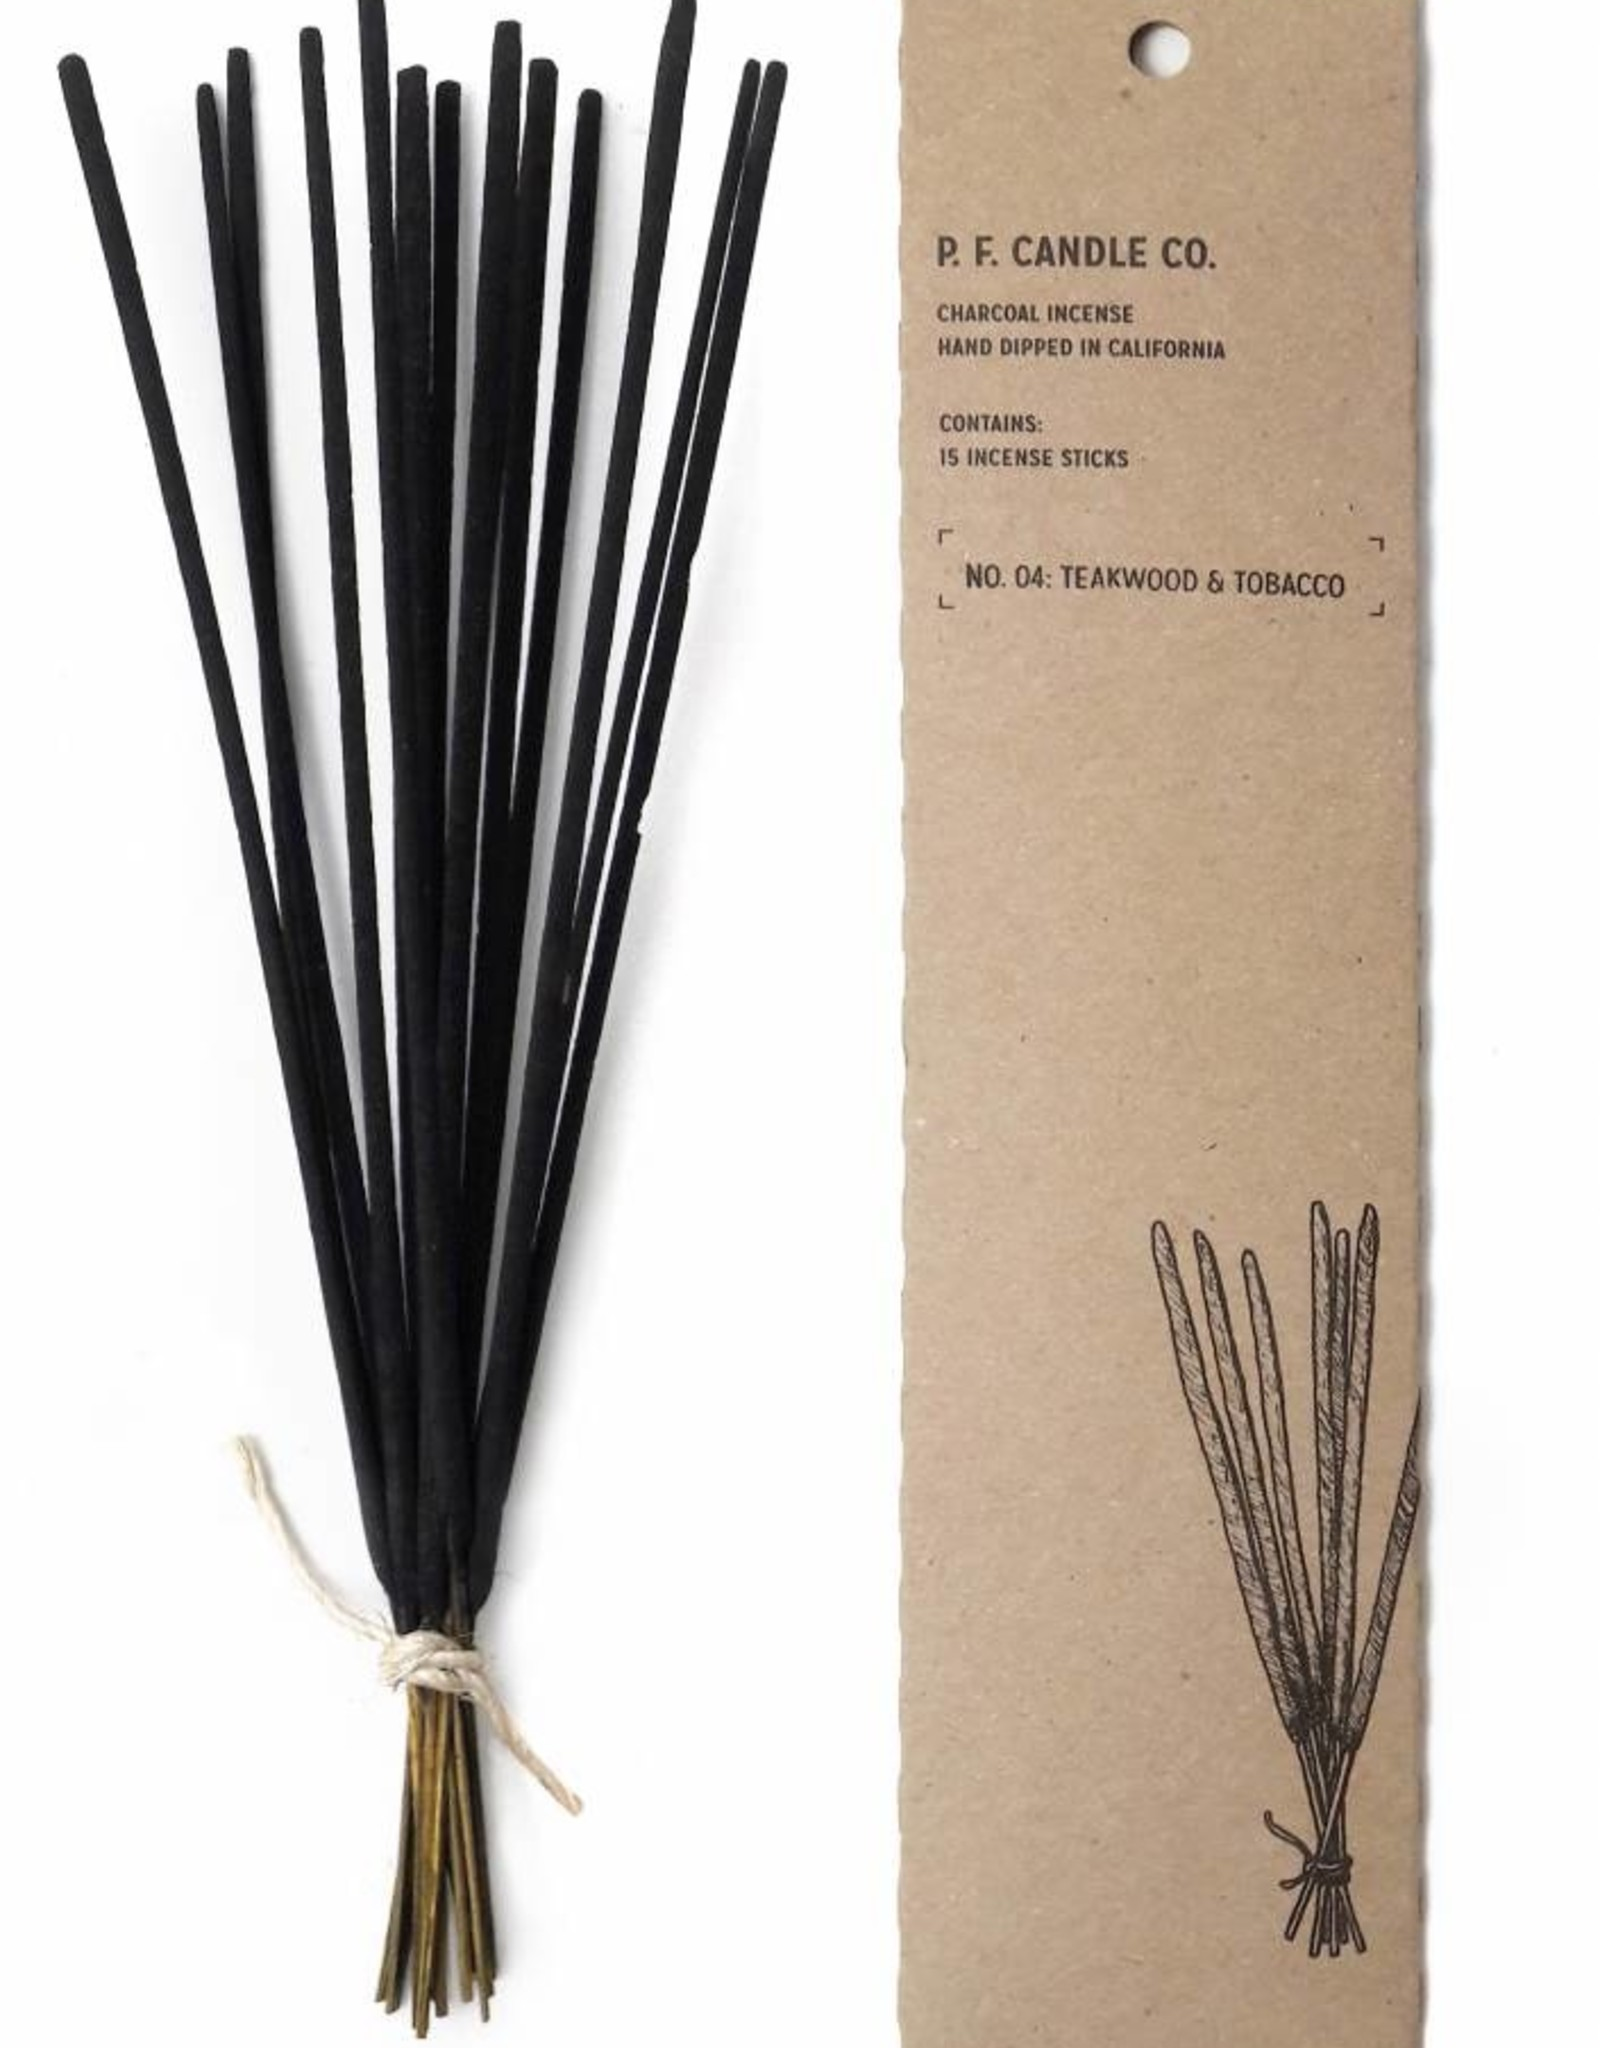 P.F.Candle & Co Teakwood and Tobacco No 4 Charcoal Incense Sticks